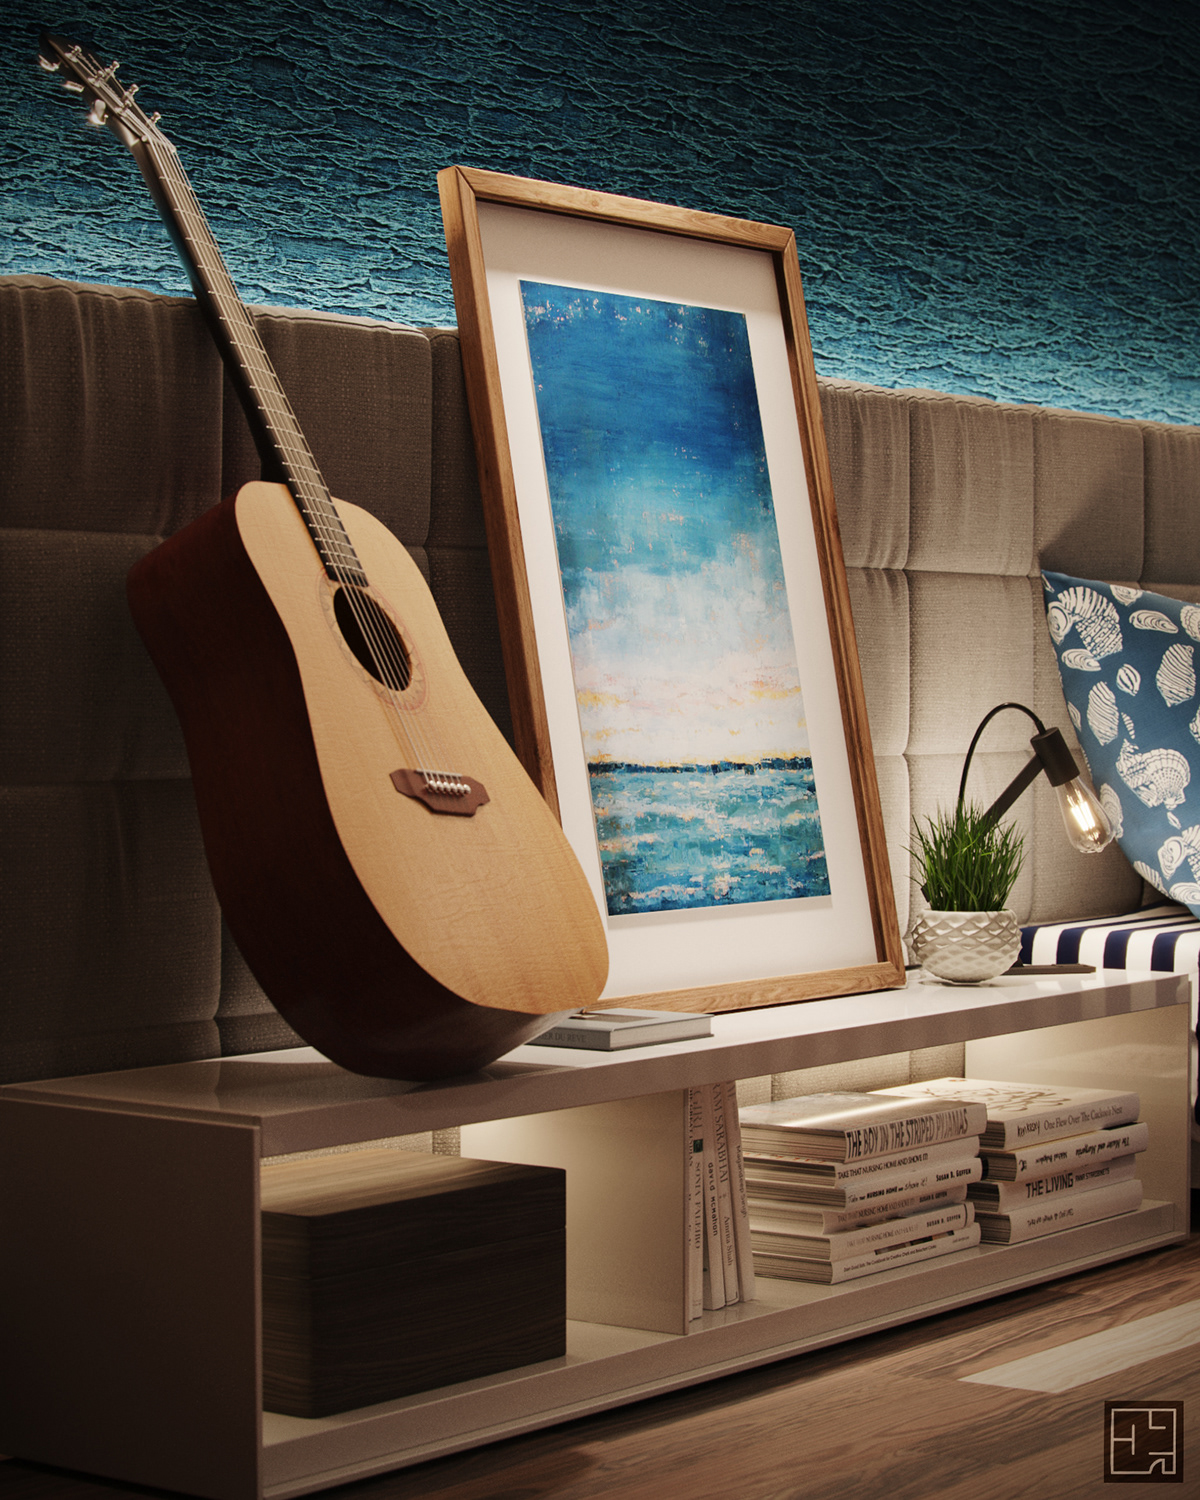 Image may contain: indoor, guitar and musical instrument